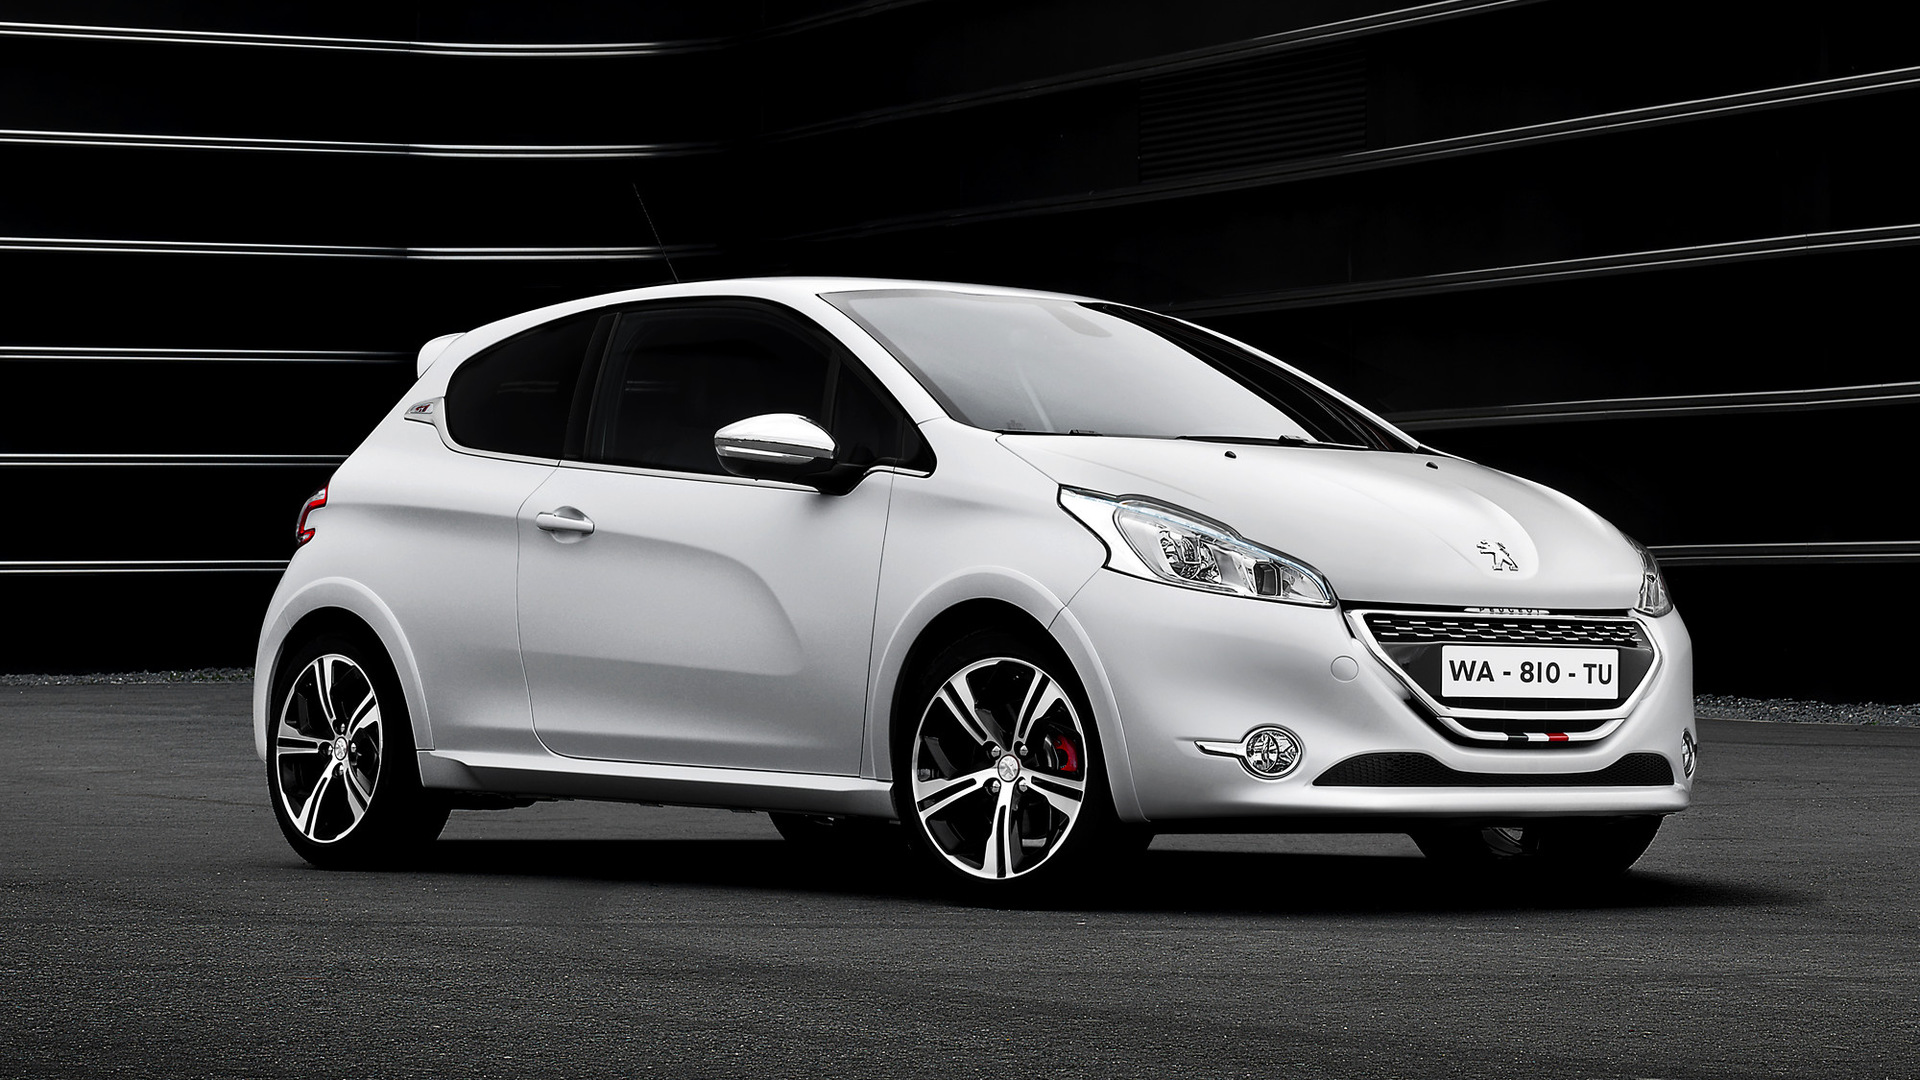 2012 Peugeot 208 Gti Wallpapers And Hd Images Car Pixel